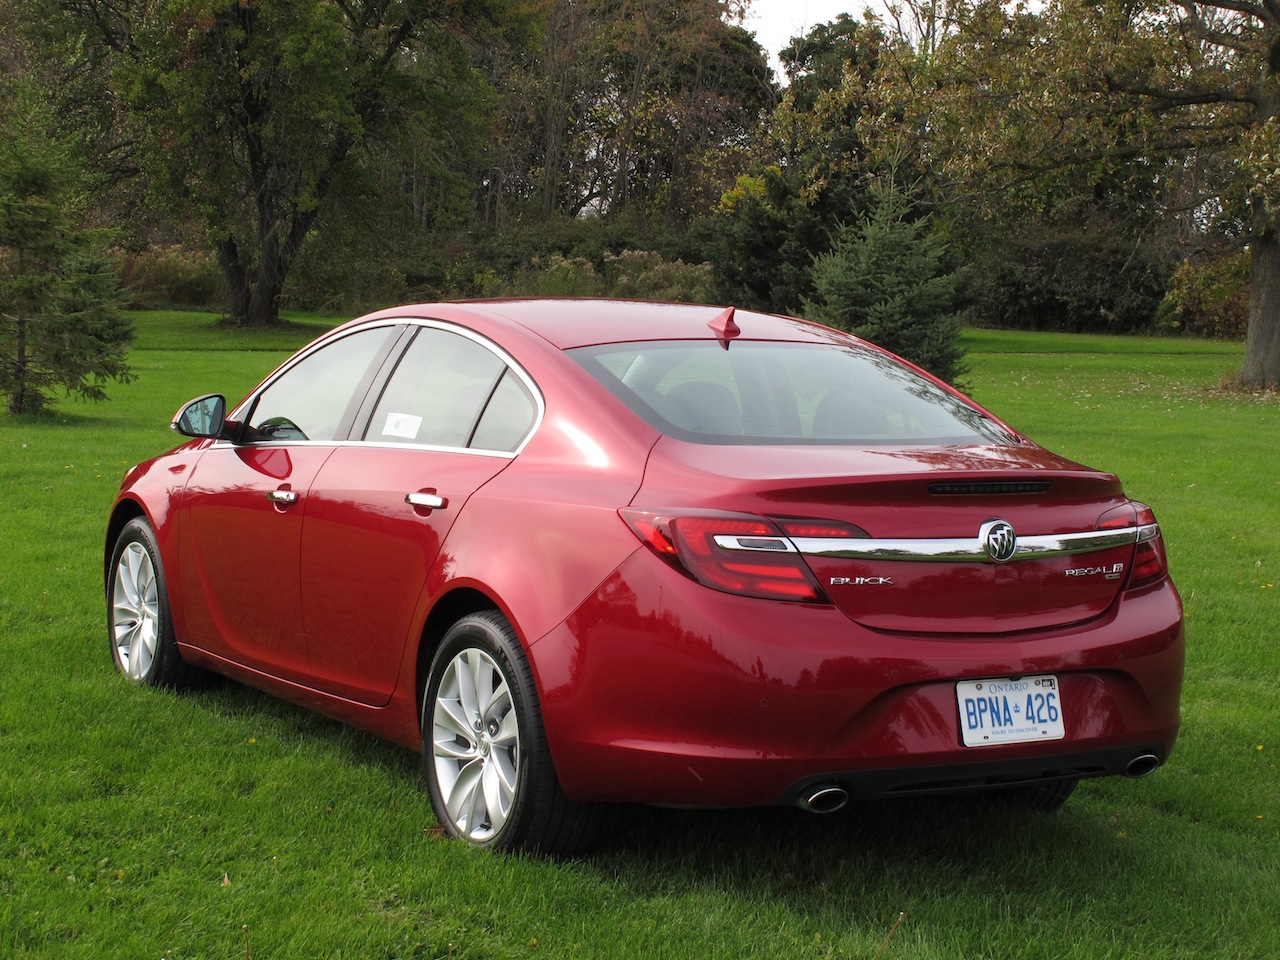 2014 buick regal photo gallery cars photos test drives and. Cars Review. Best American Auto & Cars Review